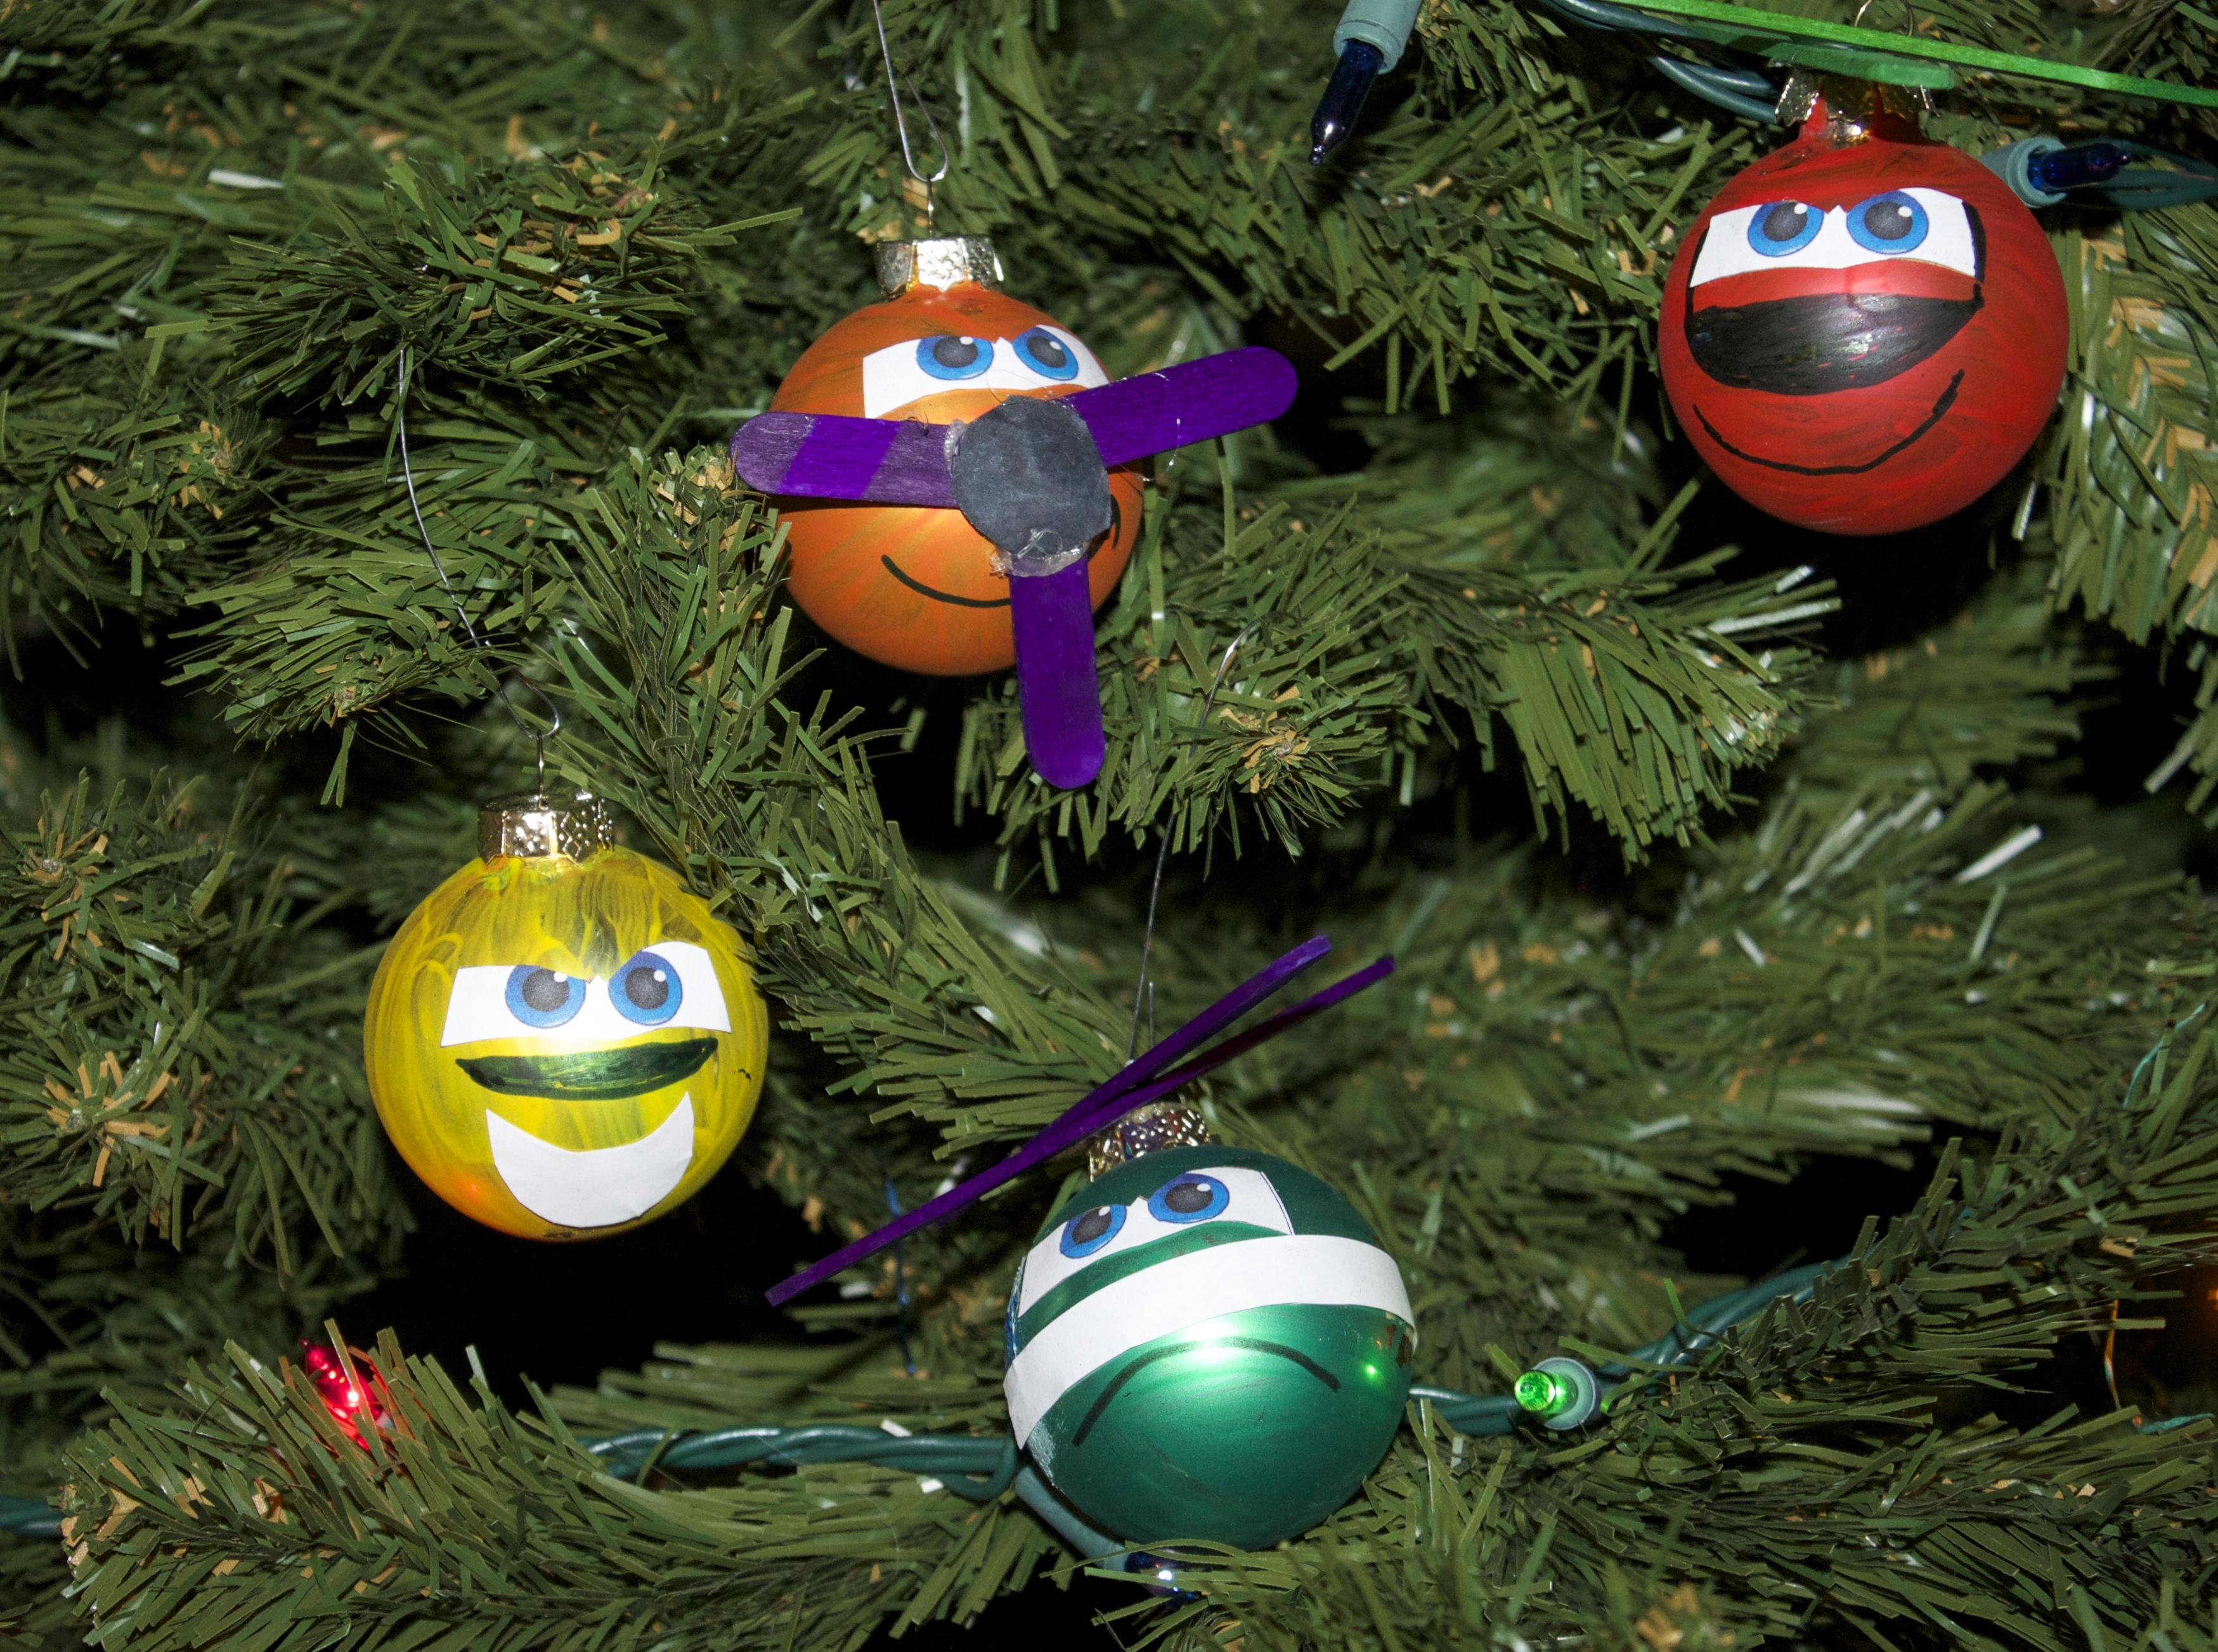 Planes Fire and Rescue Characters-Planes on Christmas Tree